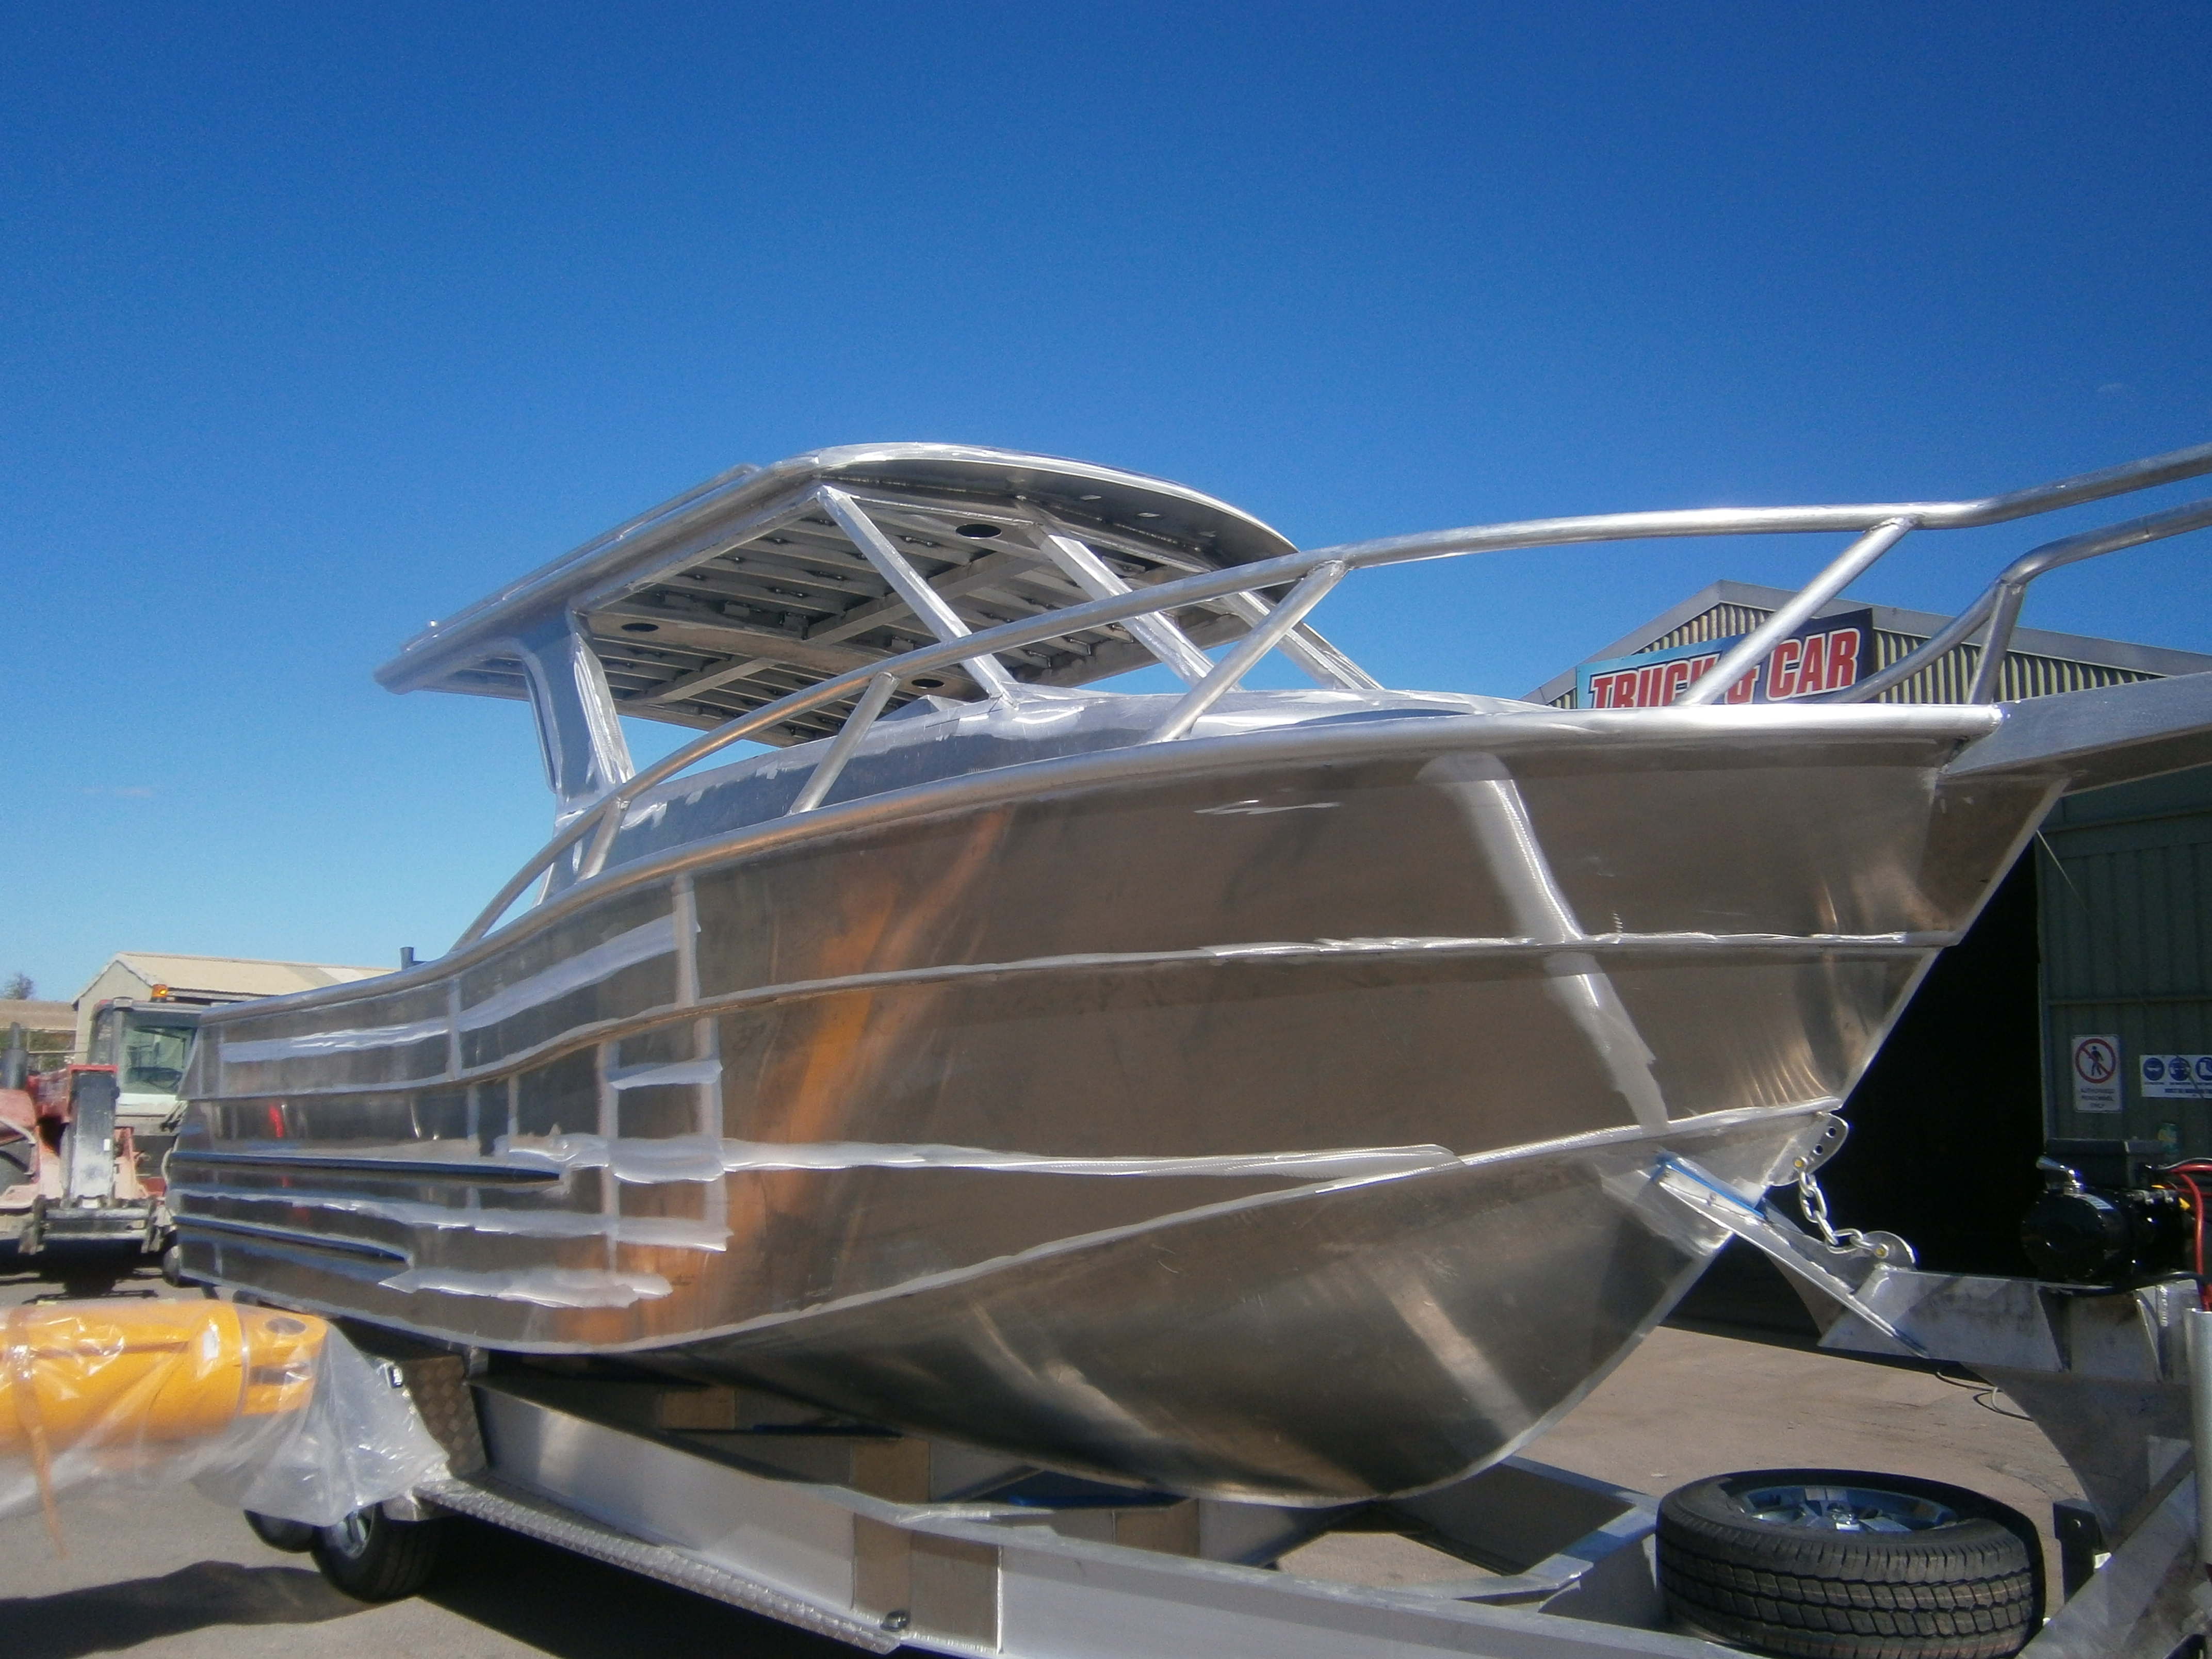 Outlaw boats - before